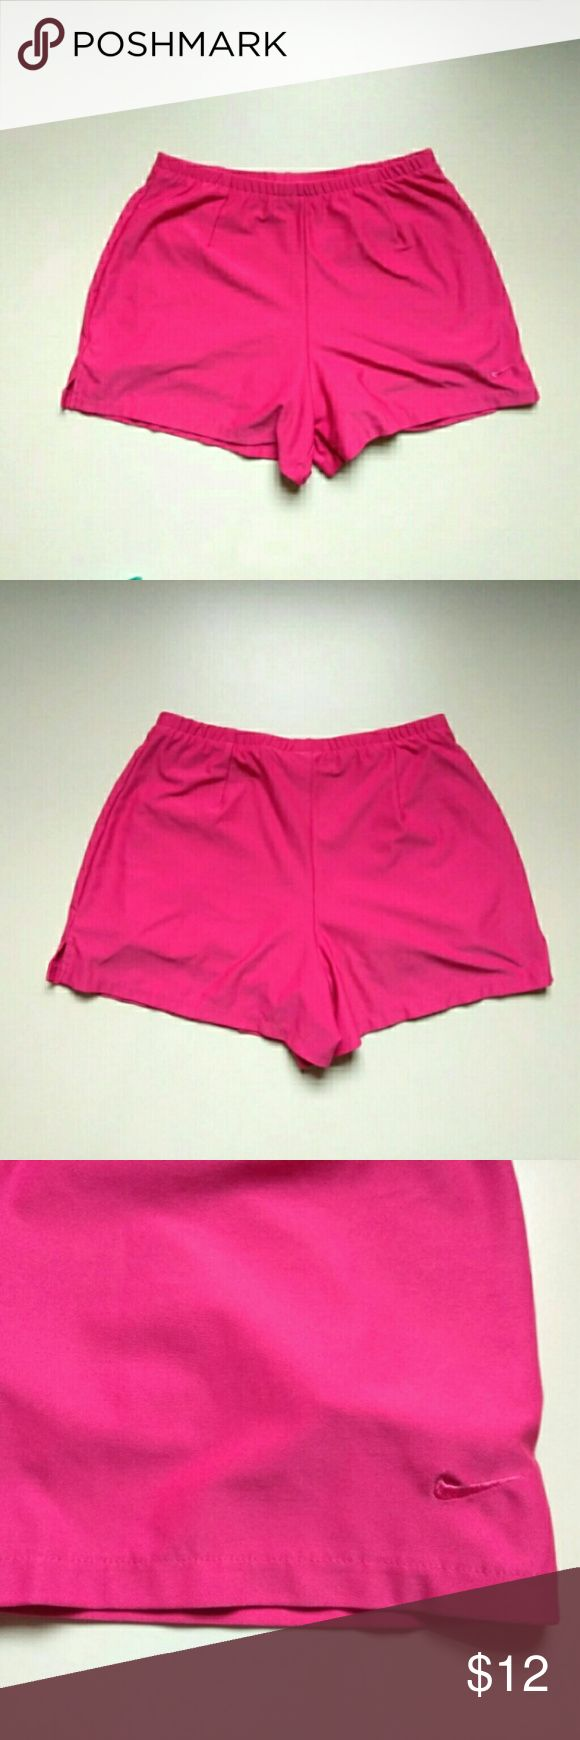 "NIKE women pink sport shorts, size small NIKE women pink shorts Size: small (4-6) Made in Mexico Length: 12-1/2"" Waist: 13-1/2"" (elastic) Stretch material Used but in good condition  Body: 86% polyester, 14% pandex Lining: 88% polyester, 12% spandex  Smoke/pet free studio  Machine wash cold. Wash separately. Do not use softener. Remove immediately. Do not allow to lay on itself when wet. Do not bleach. Line dry. Do not iron. Do not dry clean.  Please contact us if you have any concerns…"